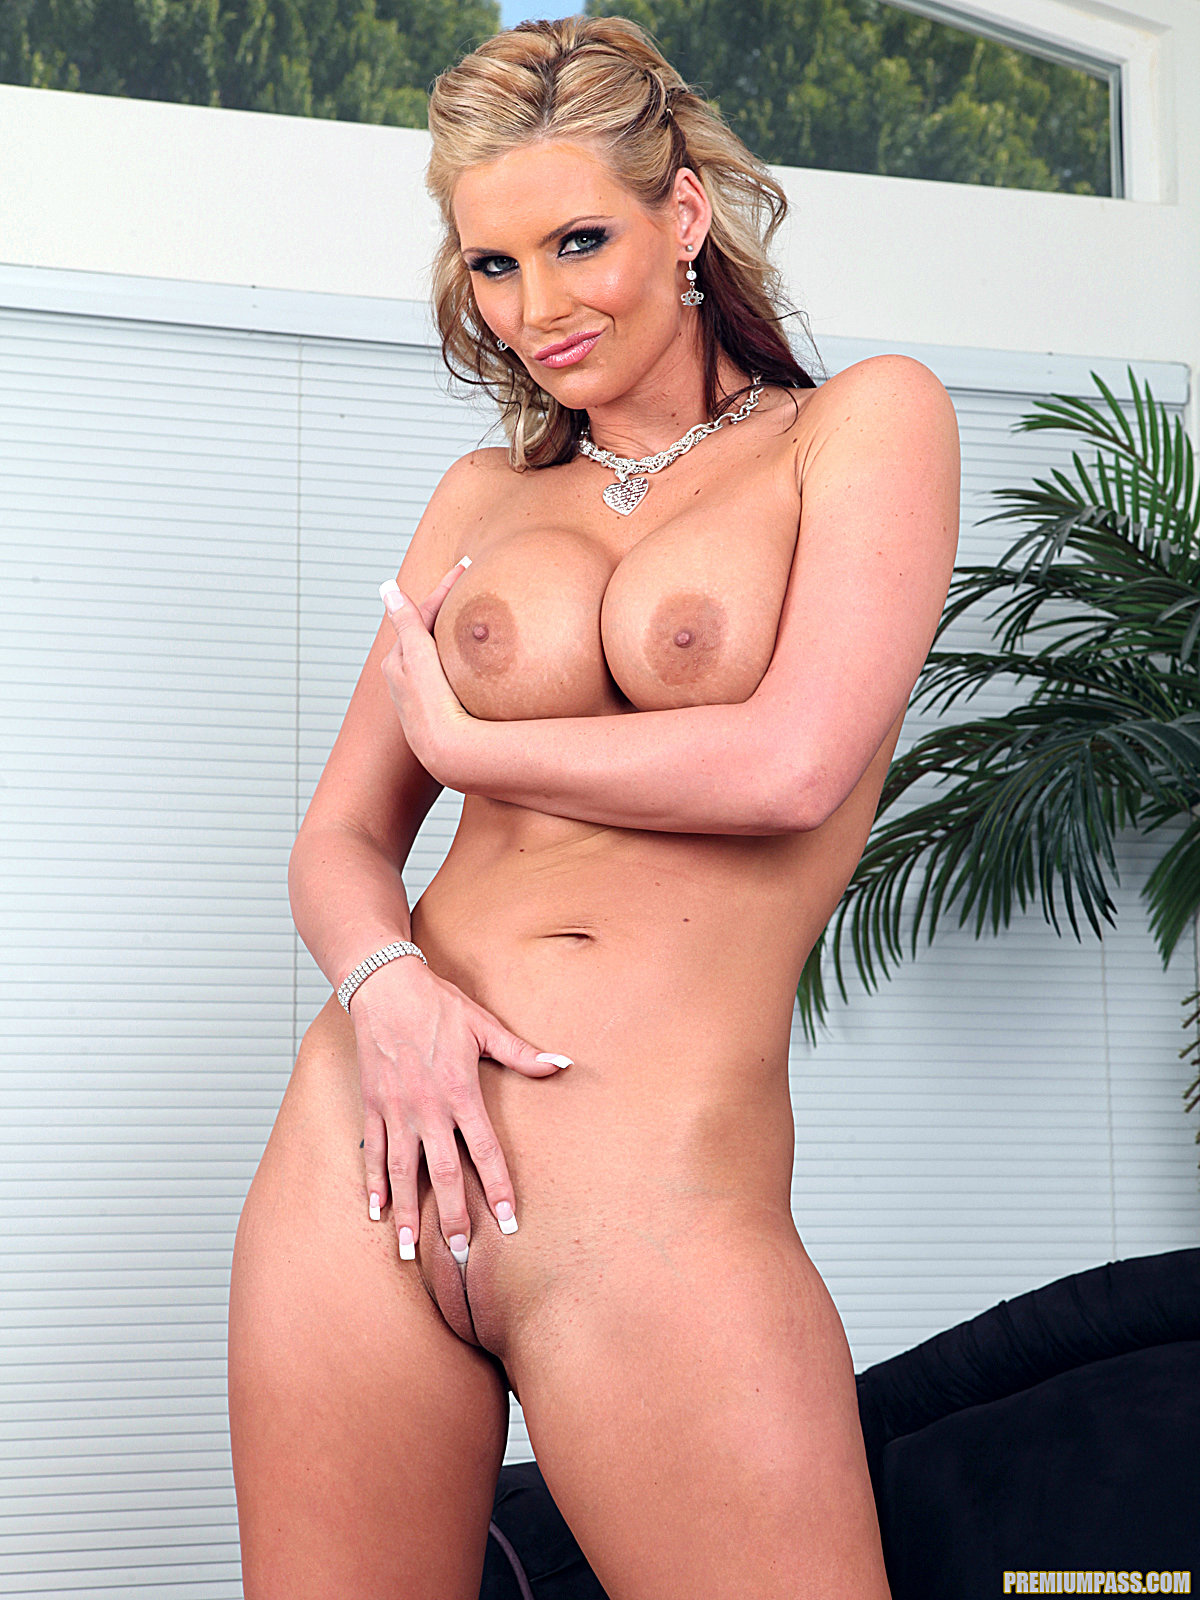 Simply Phoenix marie nude share your